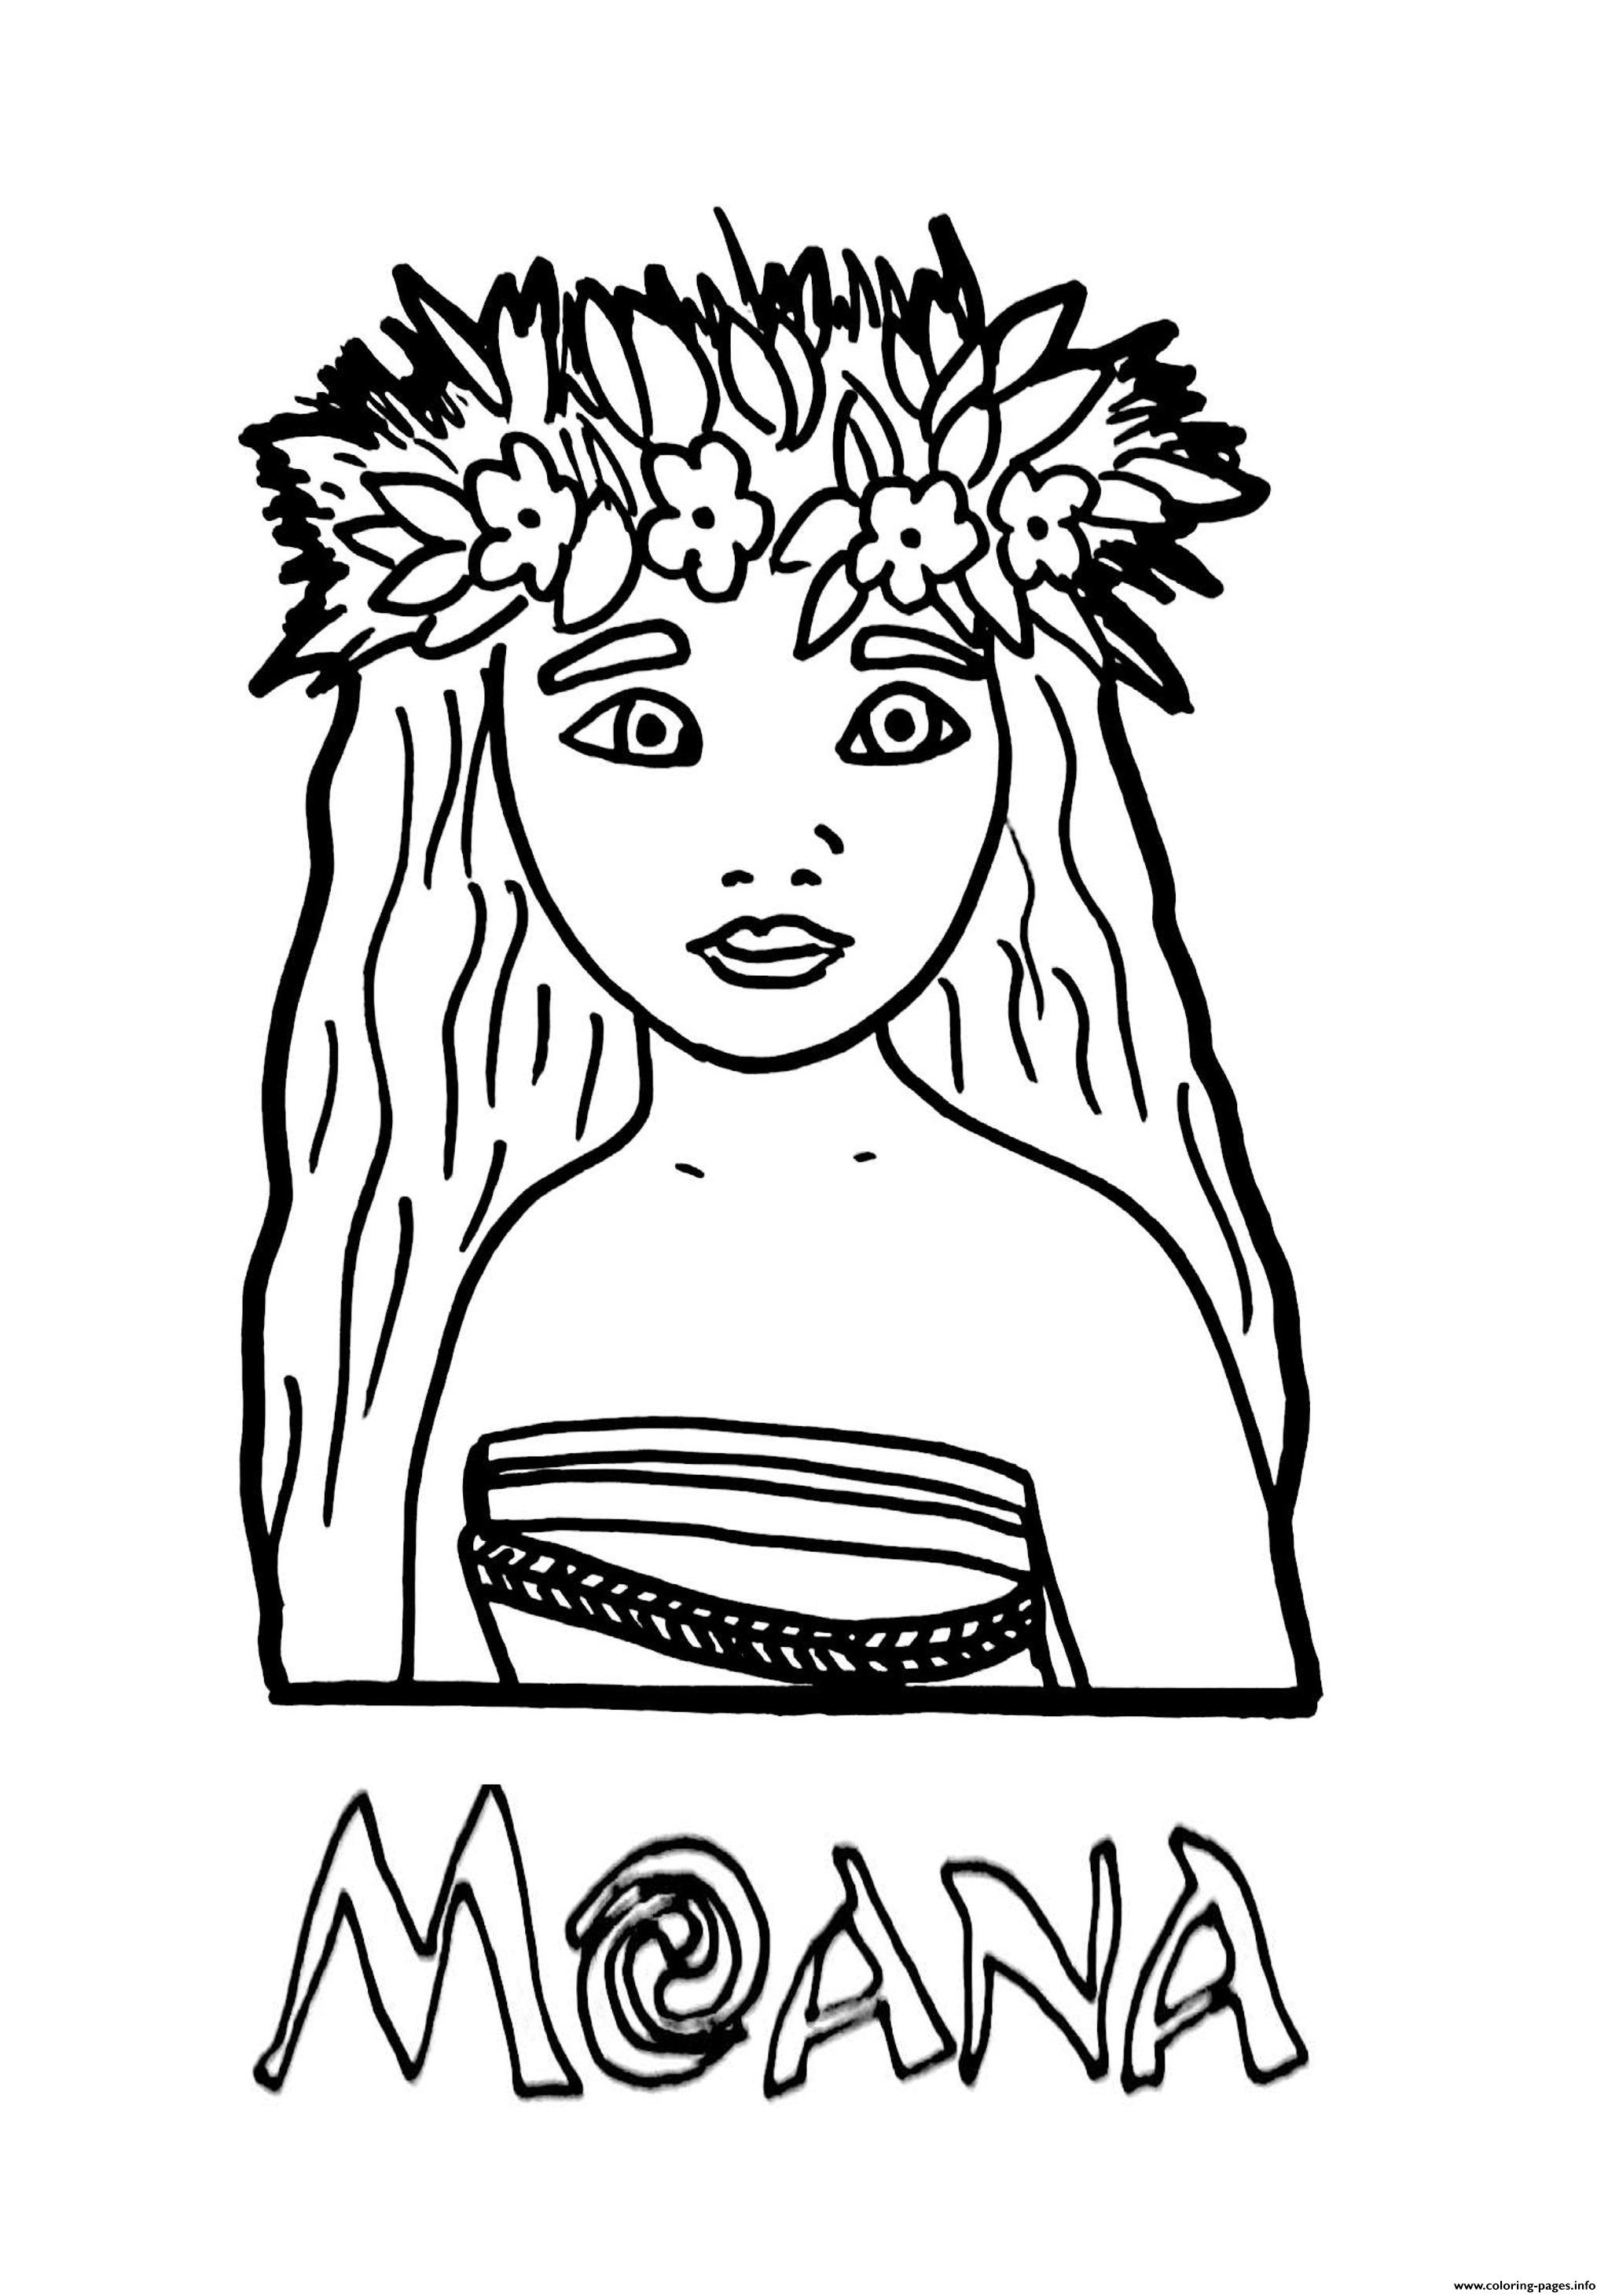 Coloring Pagesfo Moana Princess Printable Coloring Pages Book – Fun Time Gallery Of 13 Kid Coloring Pages Line Gallery